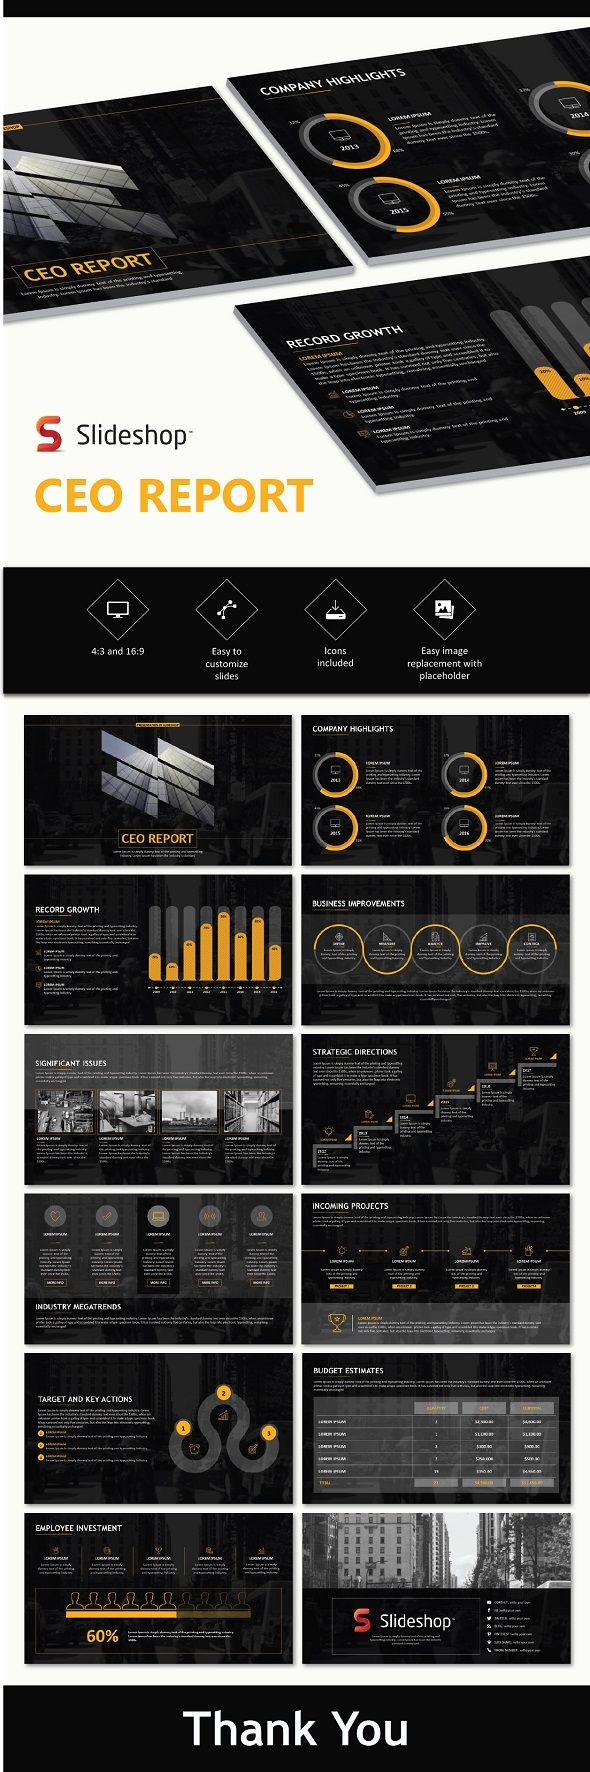 170 best PowerPoint designs images on Pinterest | Powerpoint designs ...